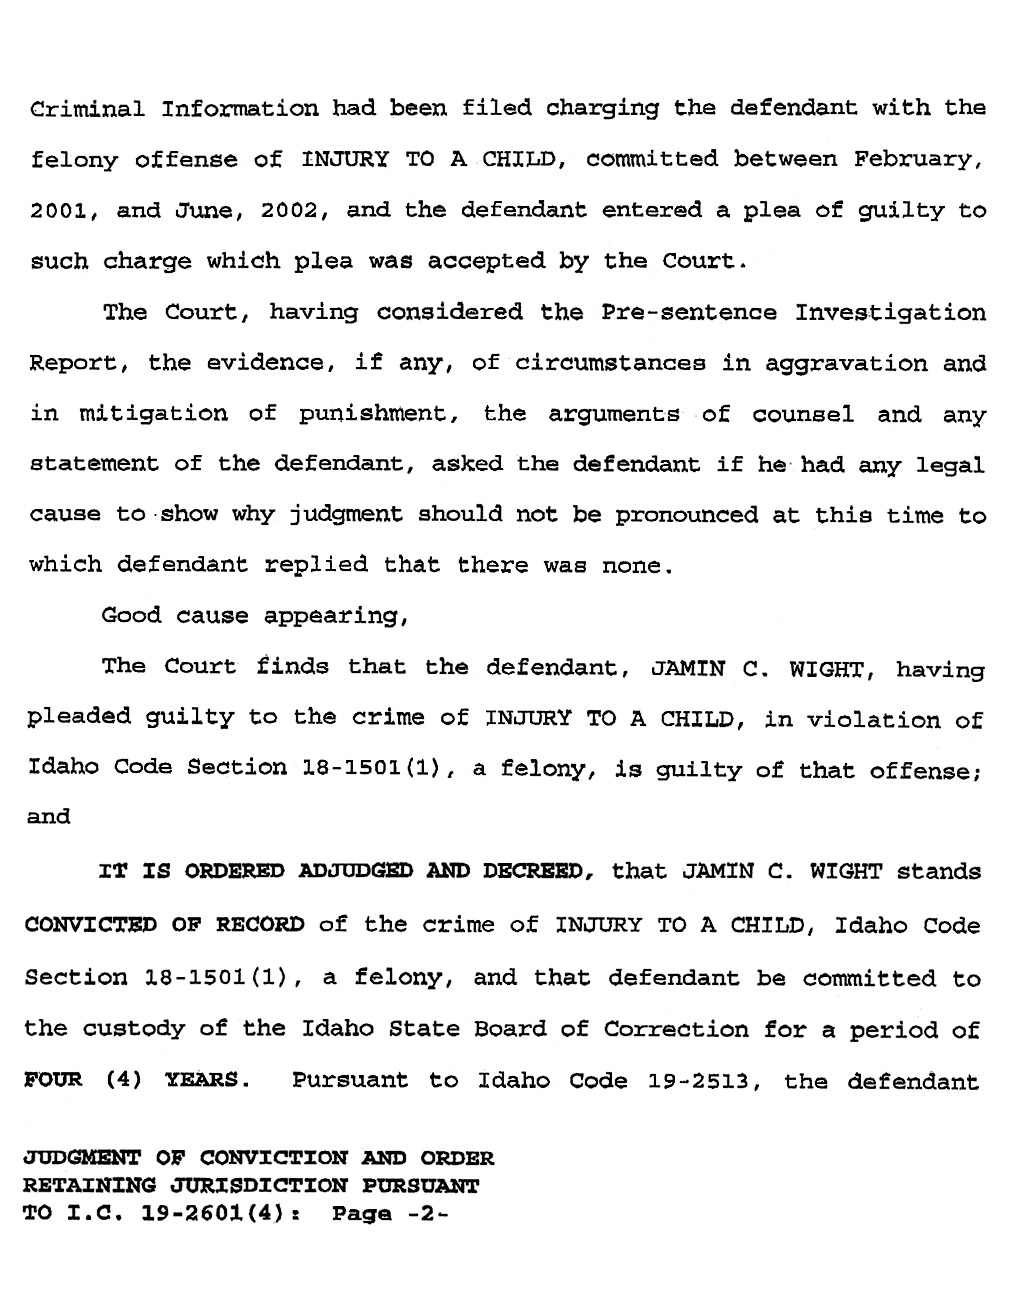 Jamin Wight: Judgment of Conviction and Order Retaining Jurisdiction page 2